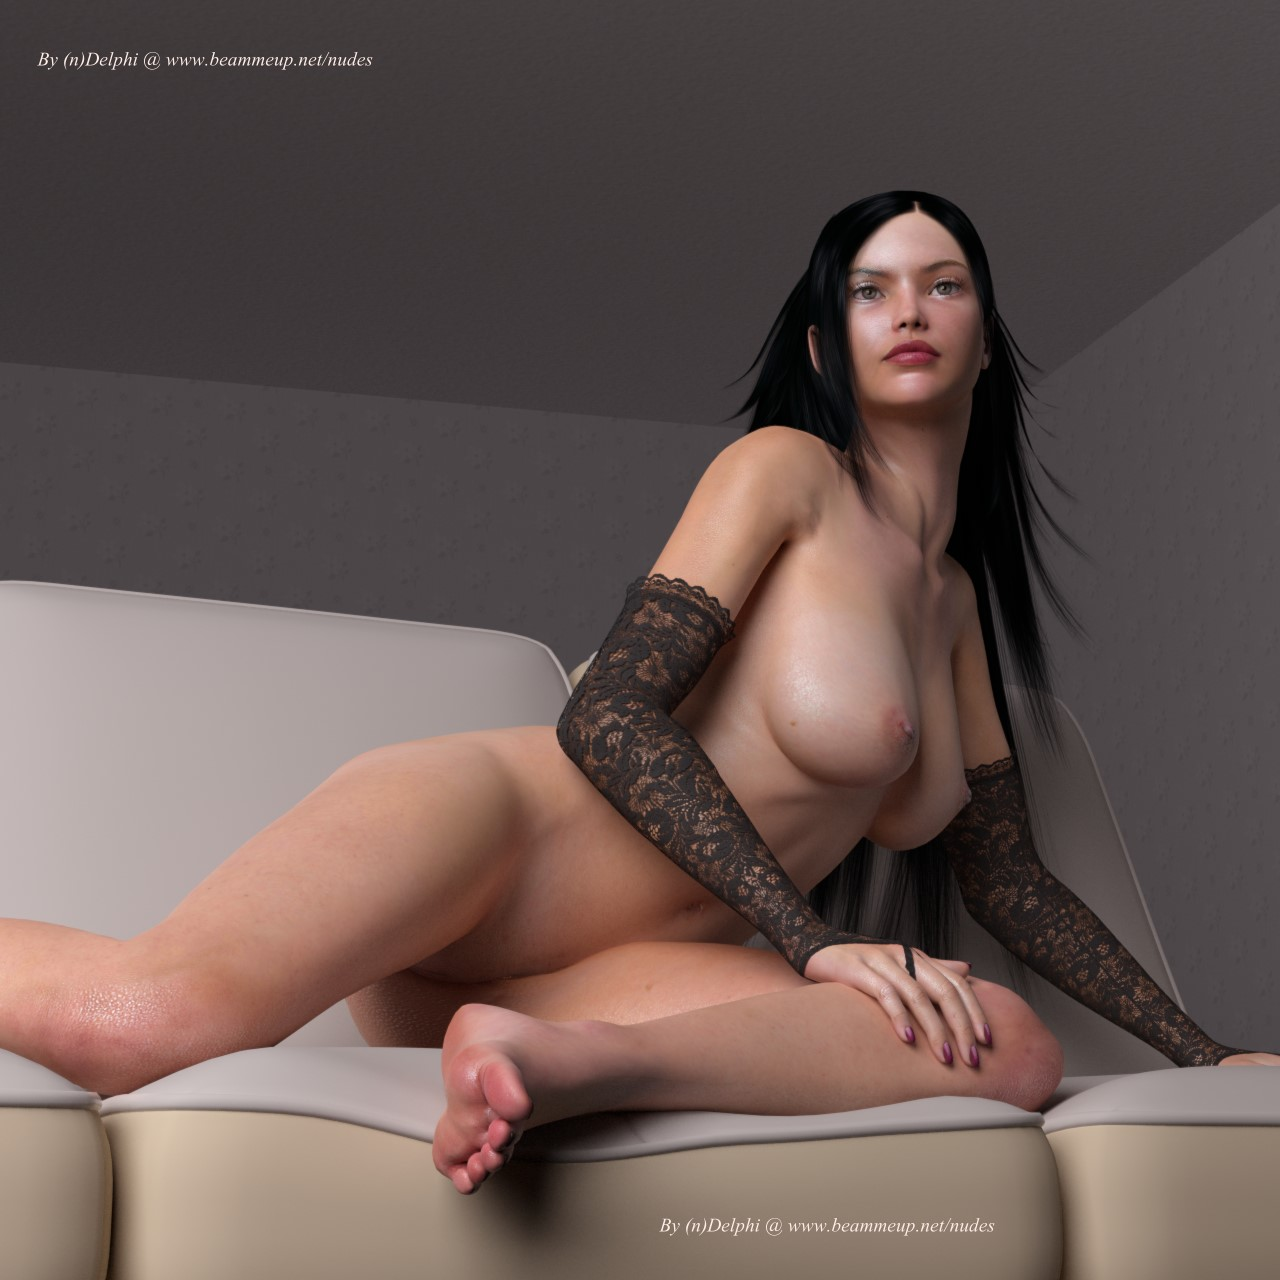 Daz3d nudes adult stupid women